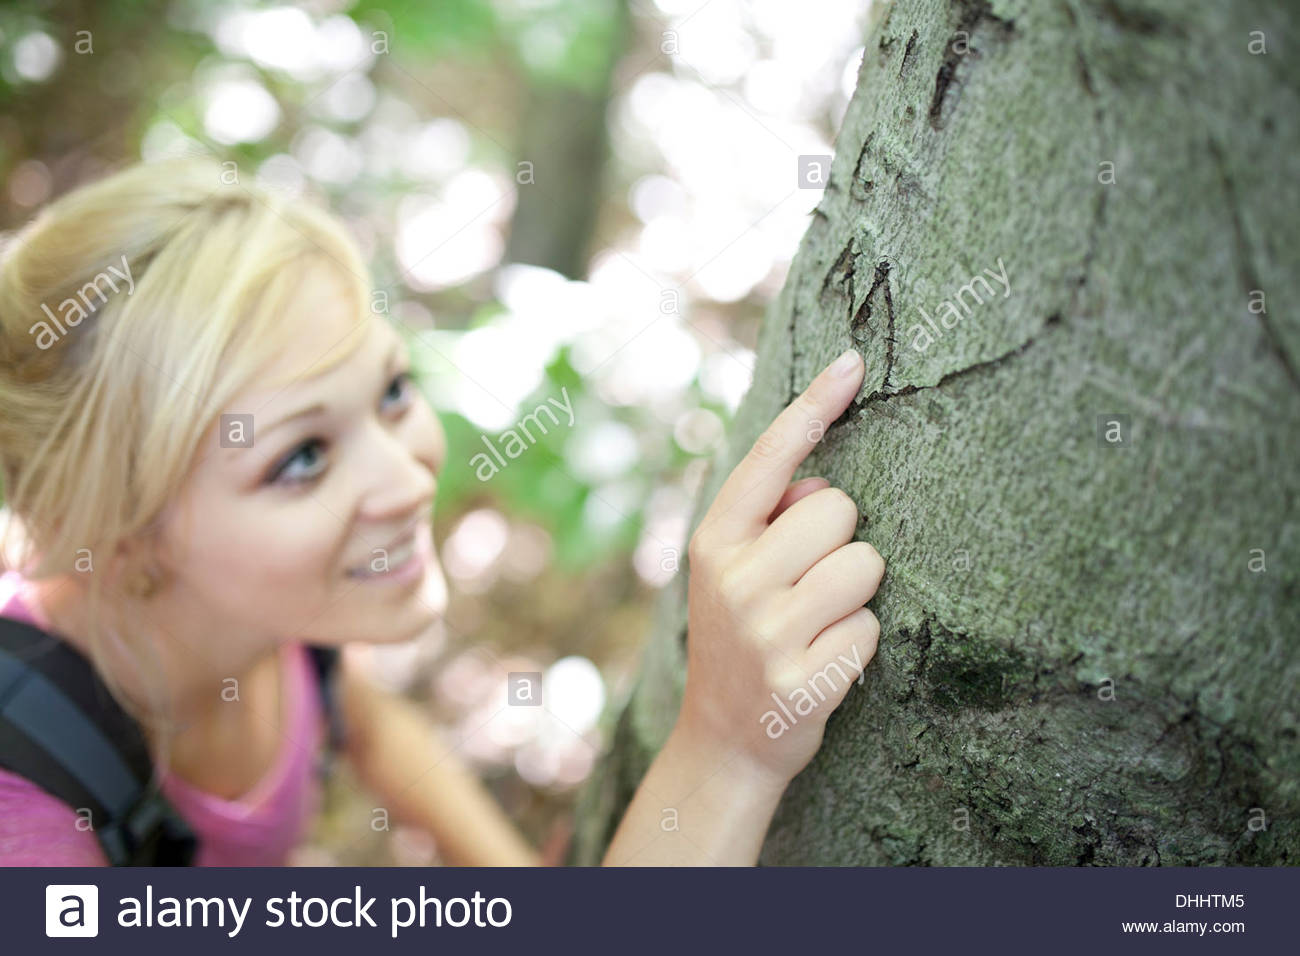 Woman in forest looking at carving in tree bark - Stock Image